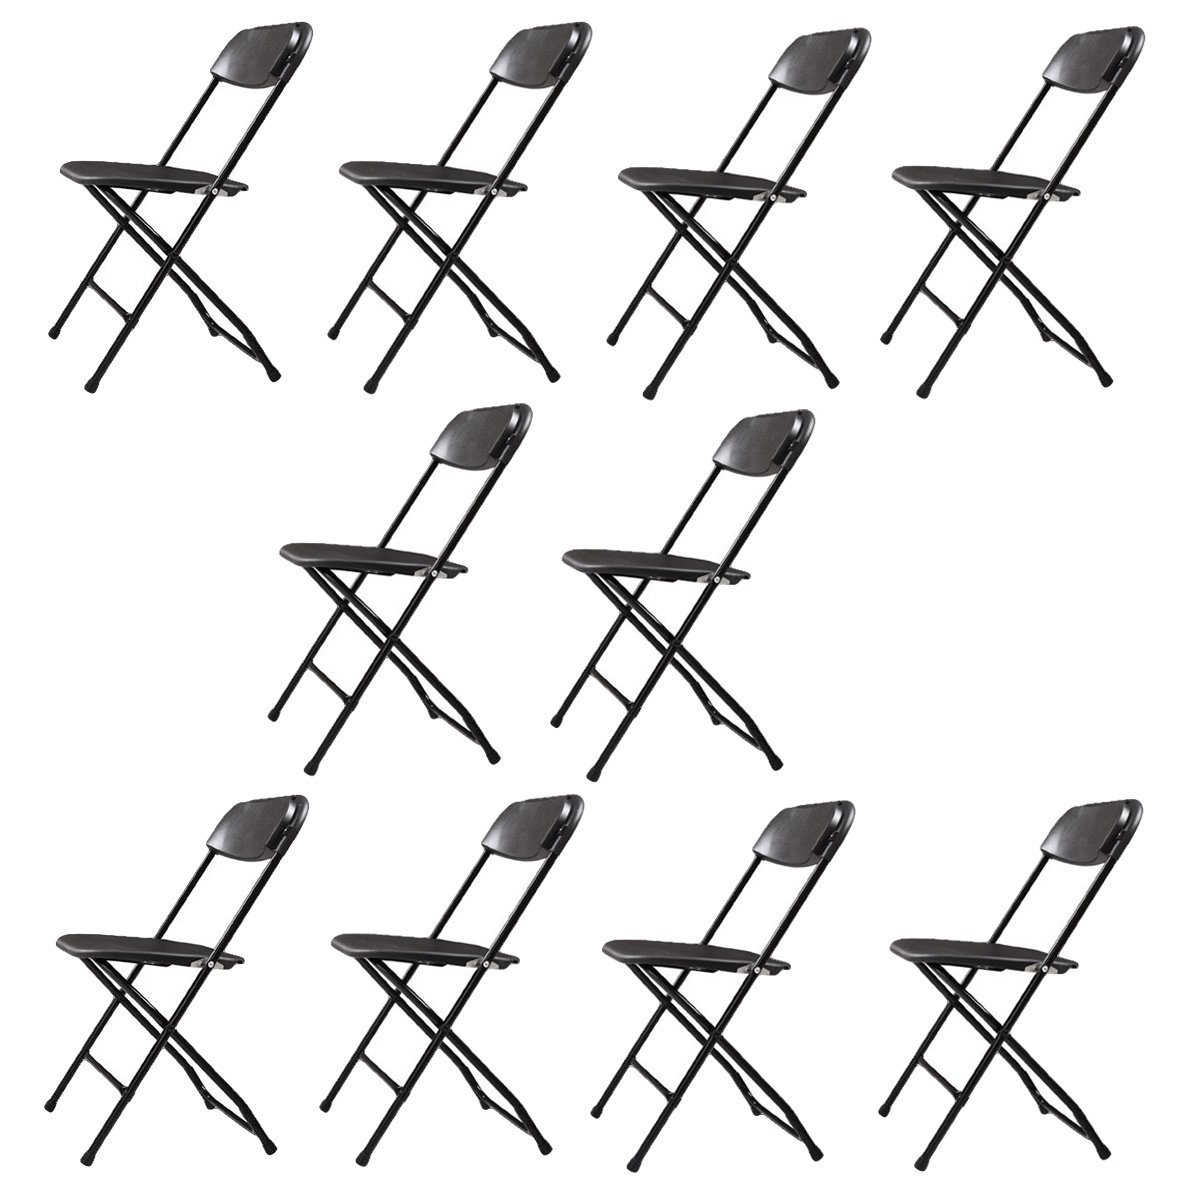 Sandinrayli 10 PCs Black Plastic Folding Chairs Commercial Quality Stackable Outdoor Event Chairs by Sandinrayli